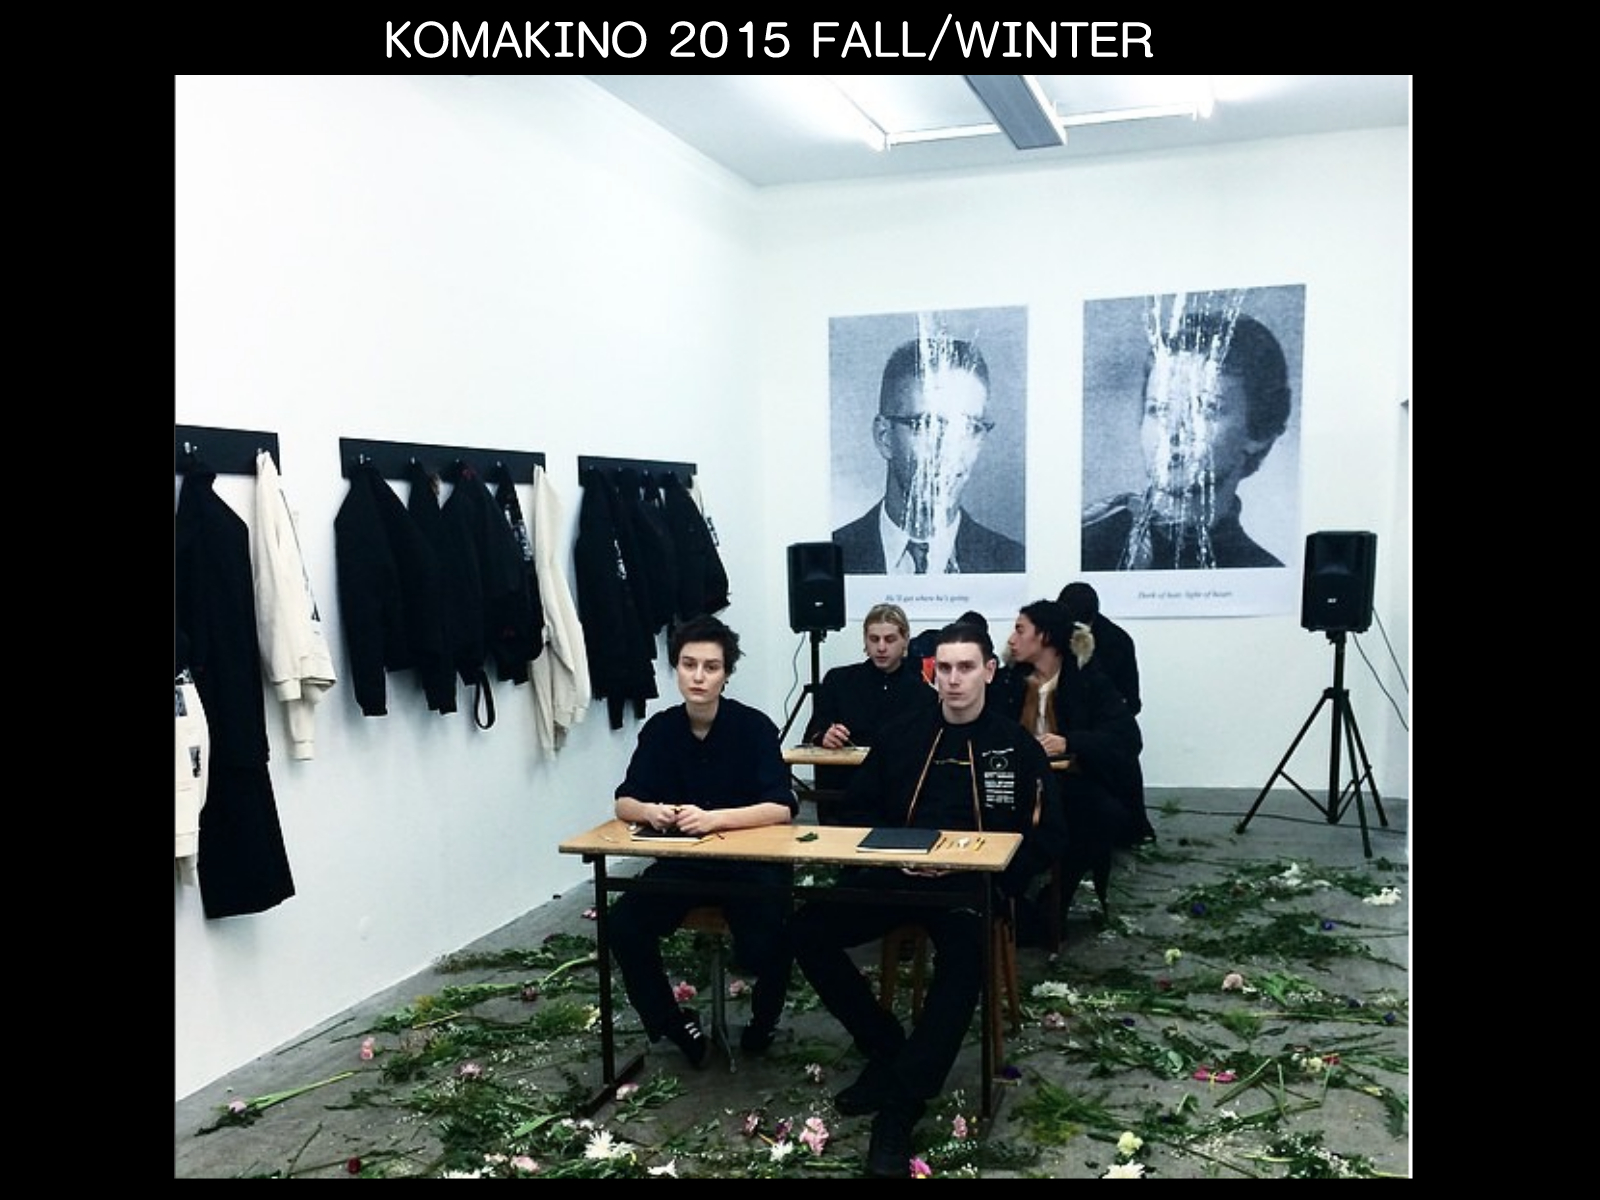 KOMAKINO FALL/WINTER 2015 50s YEAR BOOK